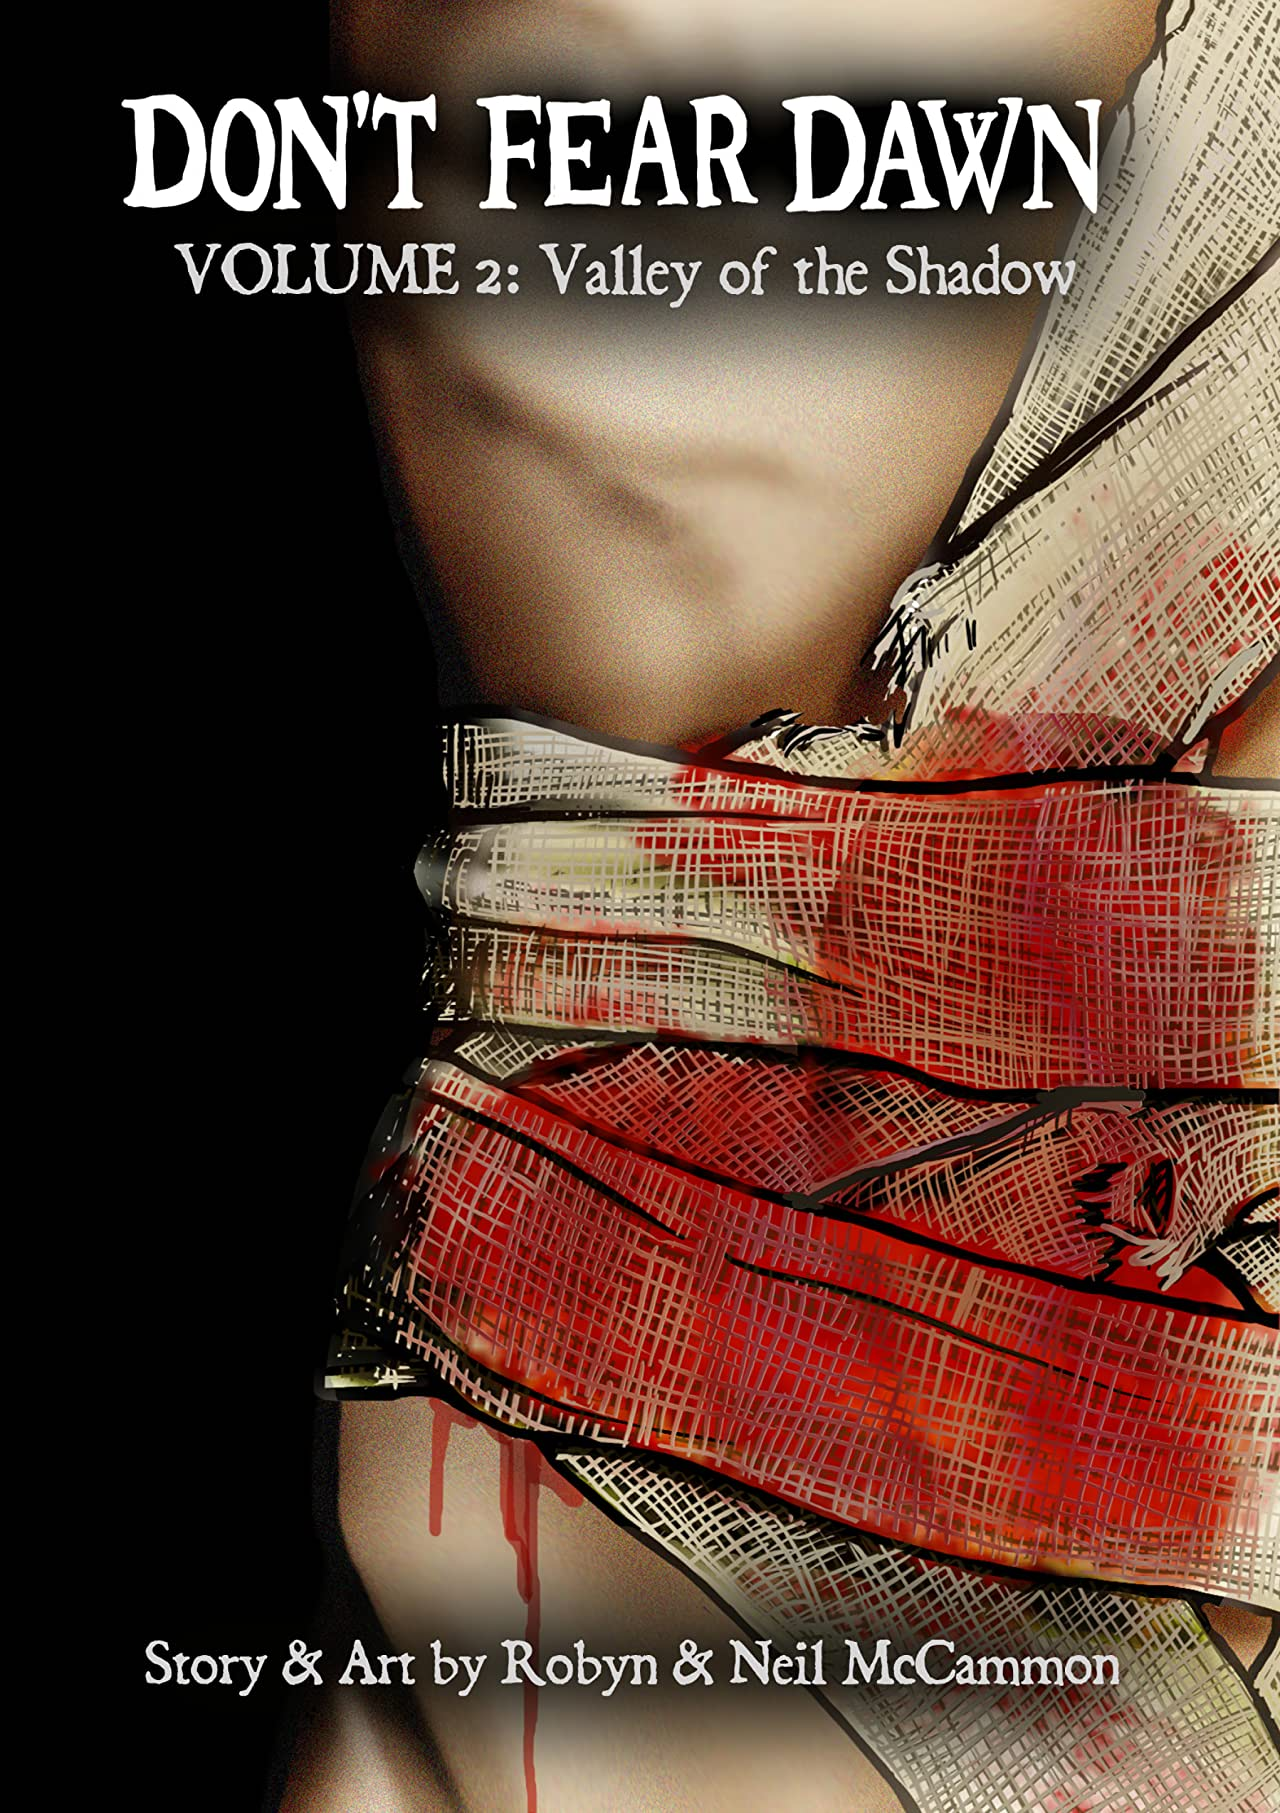 Don't Fear Dawn Vol. 2: Valley of the Shadow